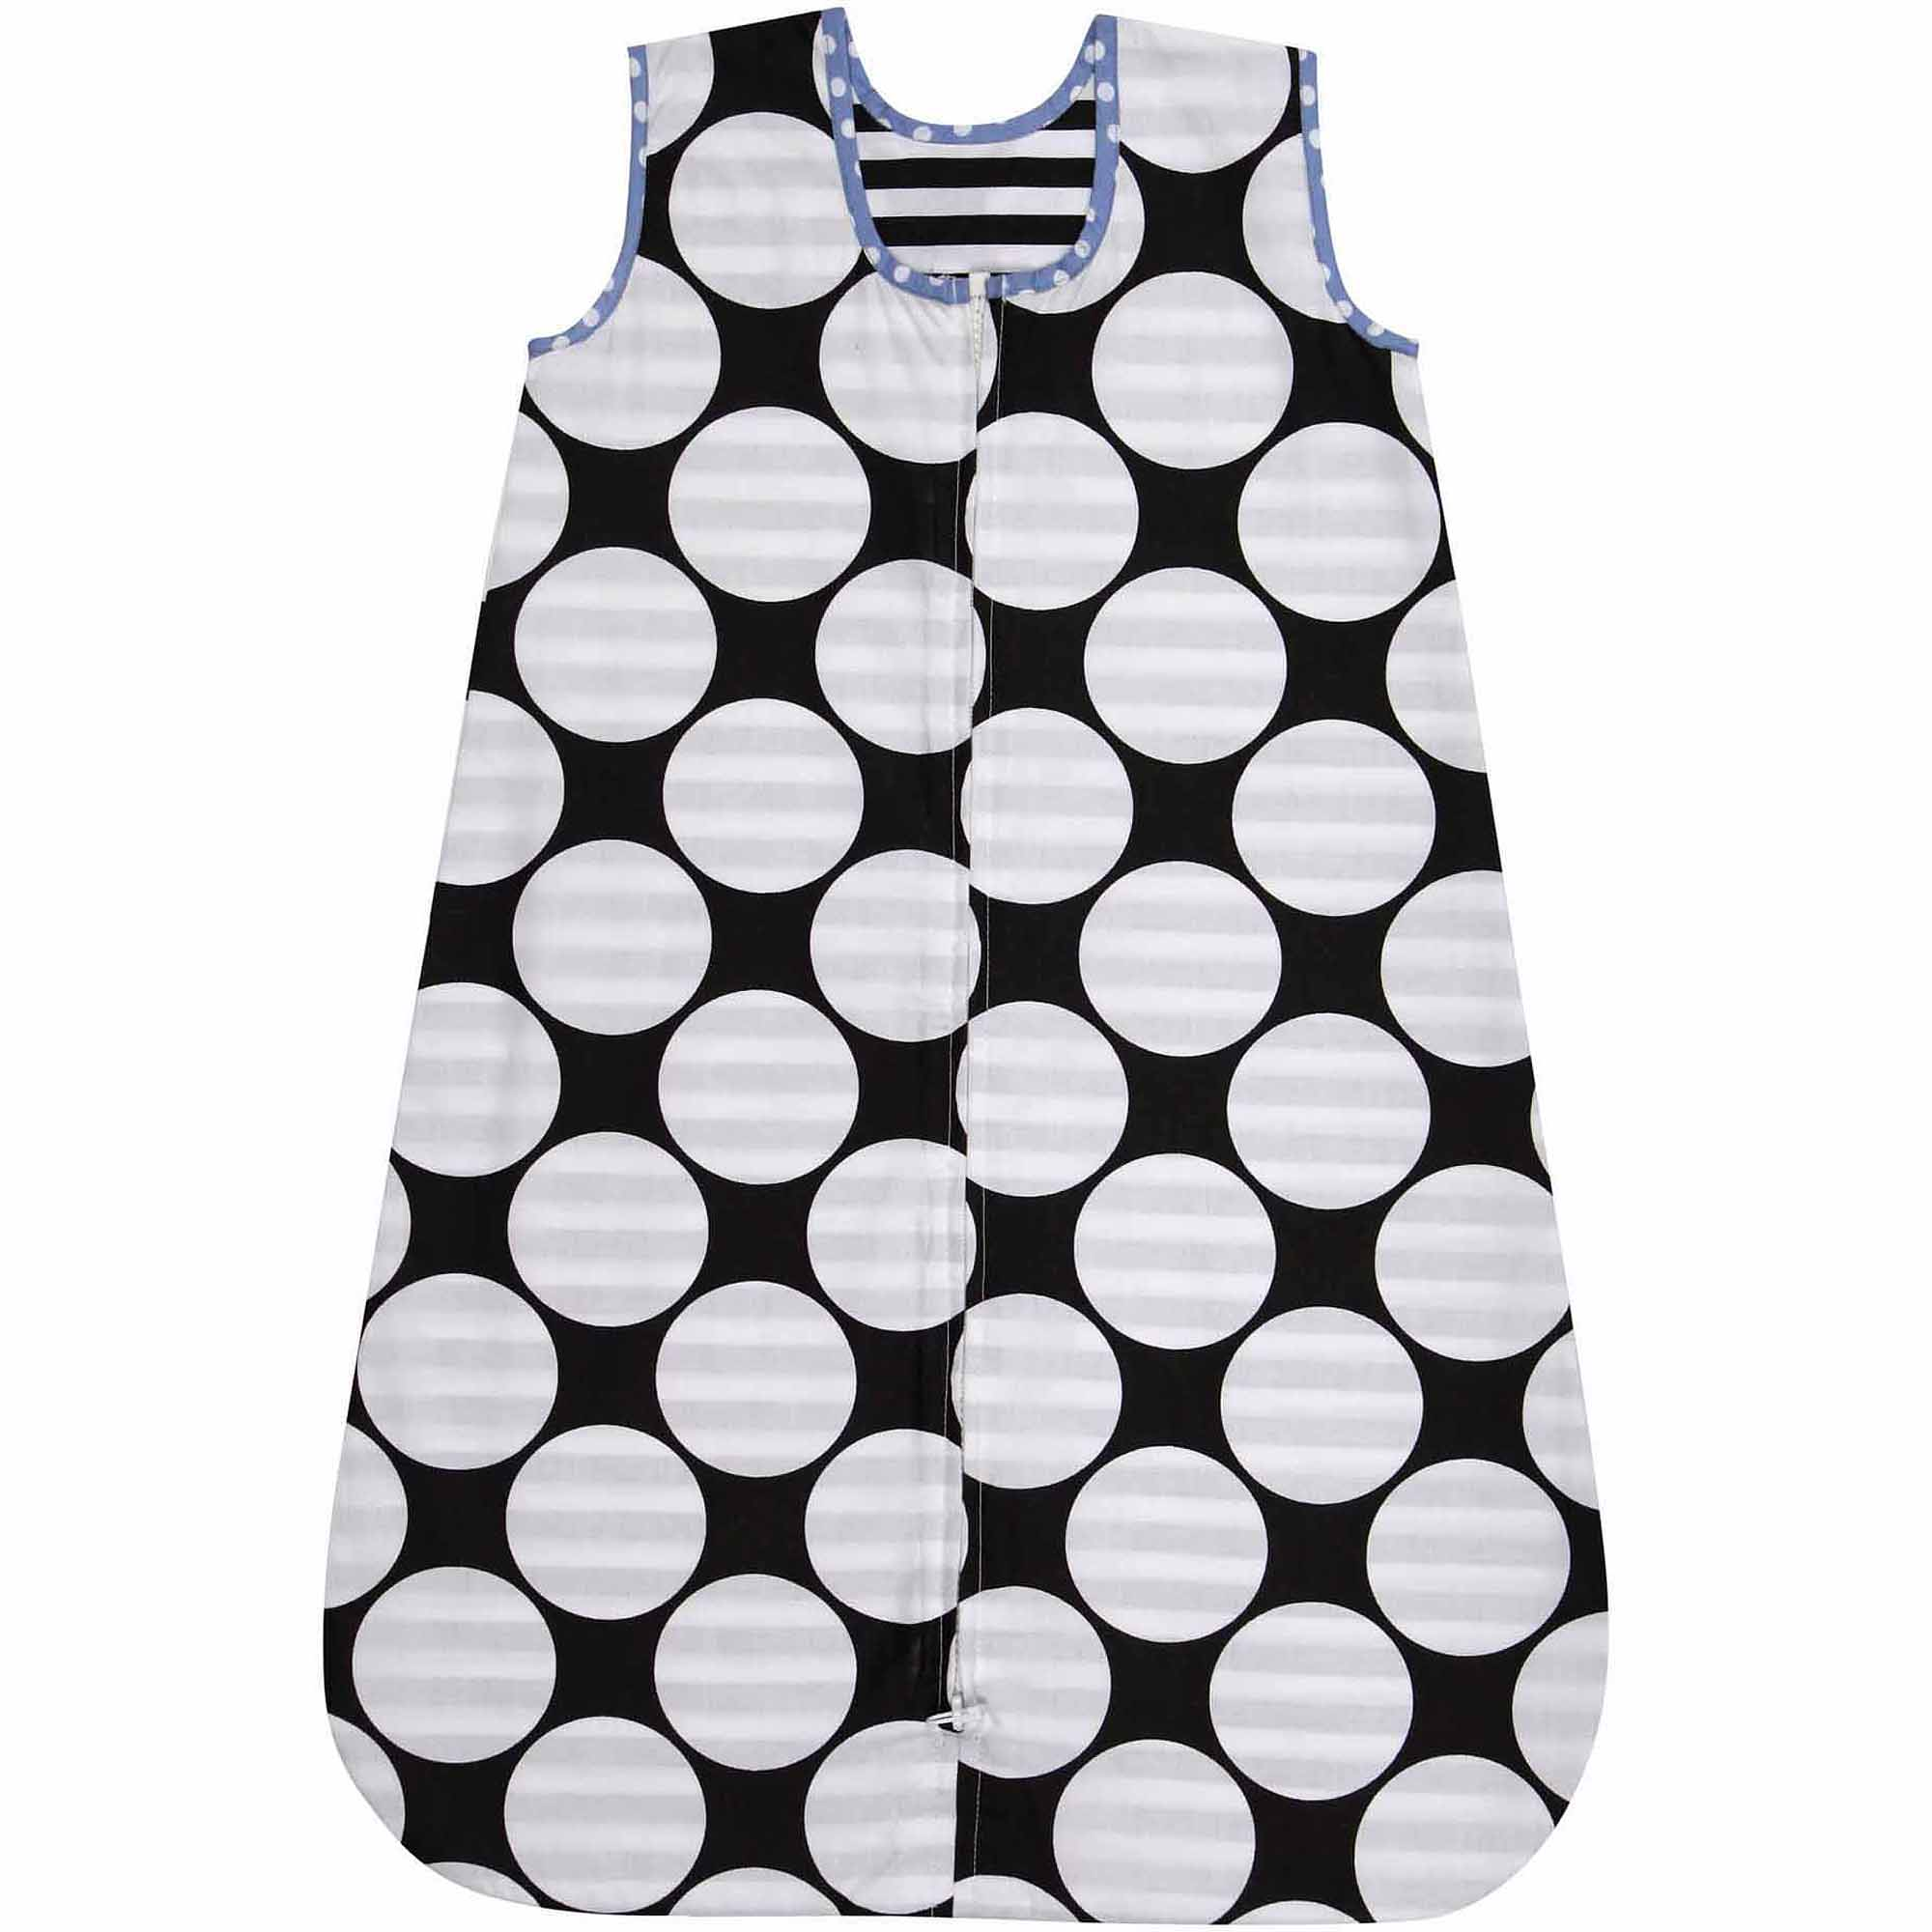 Bacati - Dots/Pin Stripes Pin Dots 100% Cotton Percale Sleep Sack 1, Black/White with Blue